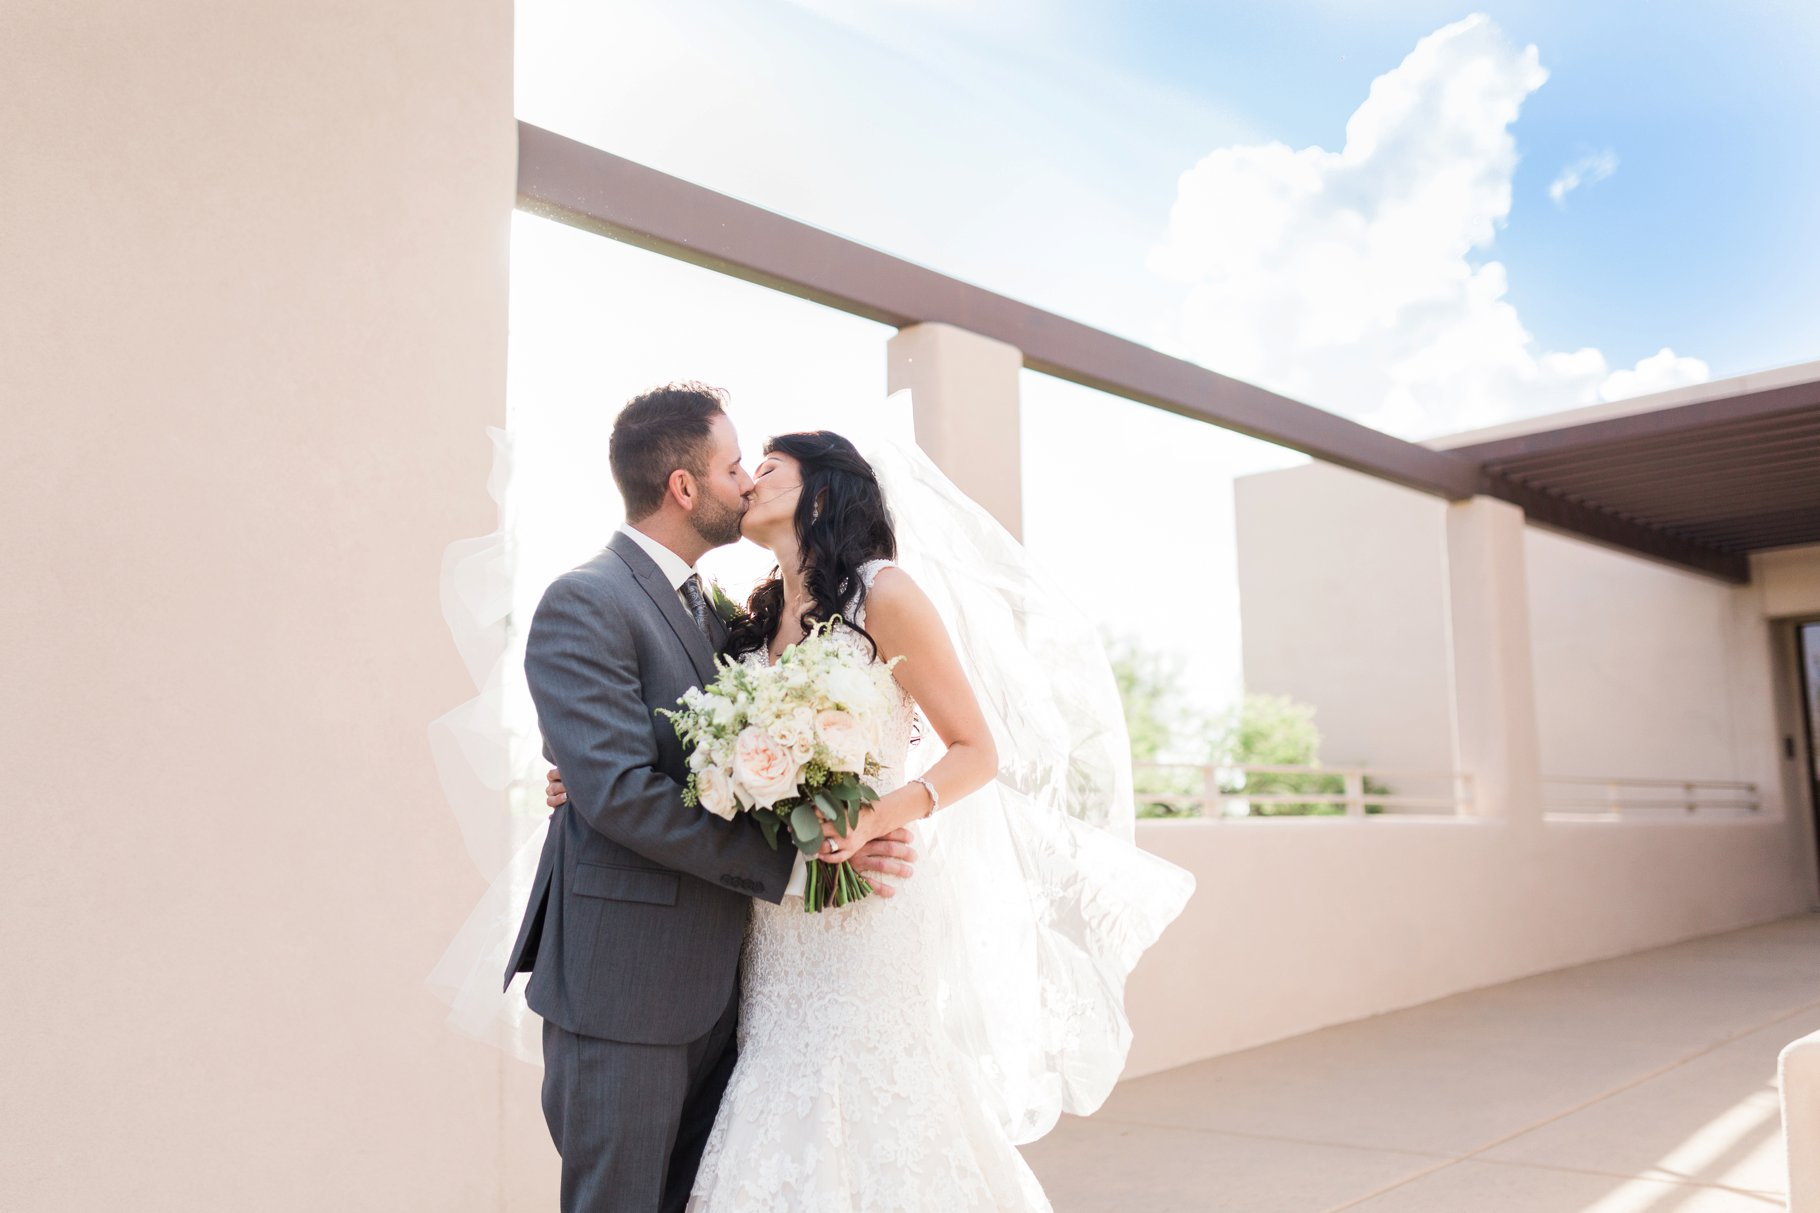 RANCHO MANANA WEDDING, CAVE CREEK AZ |